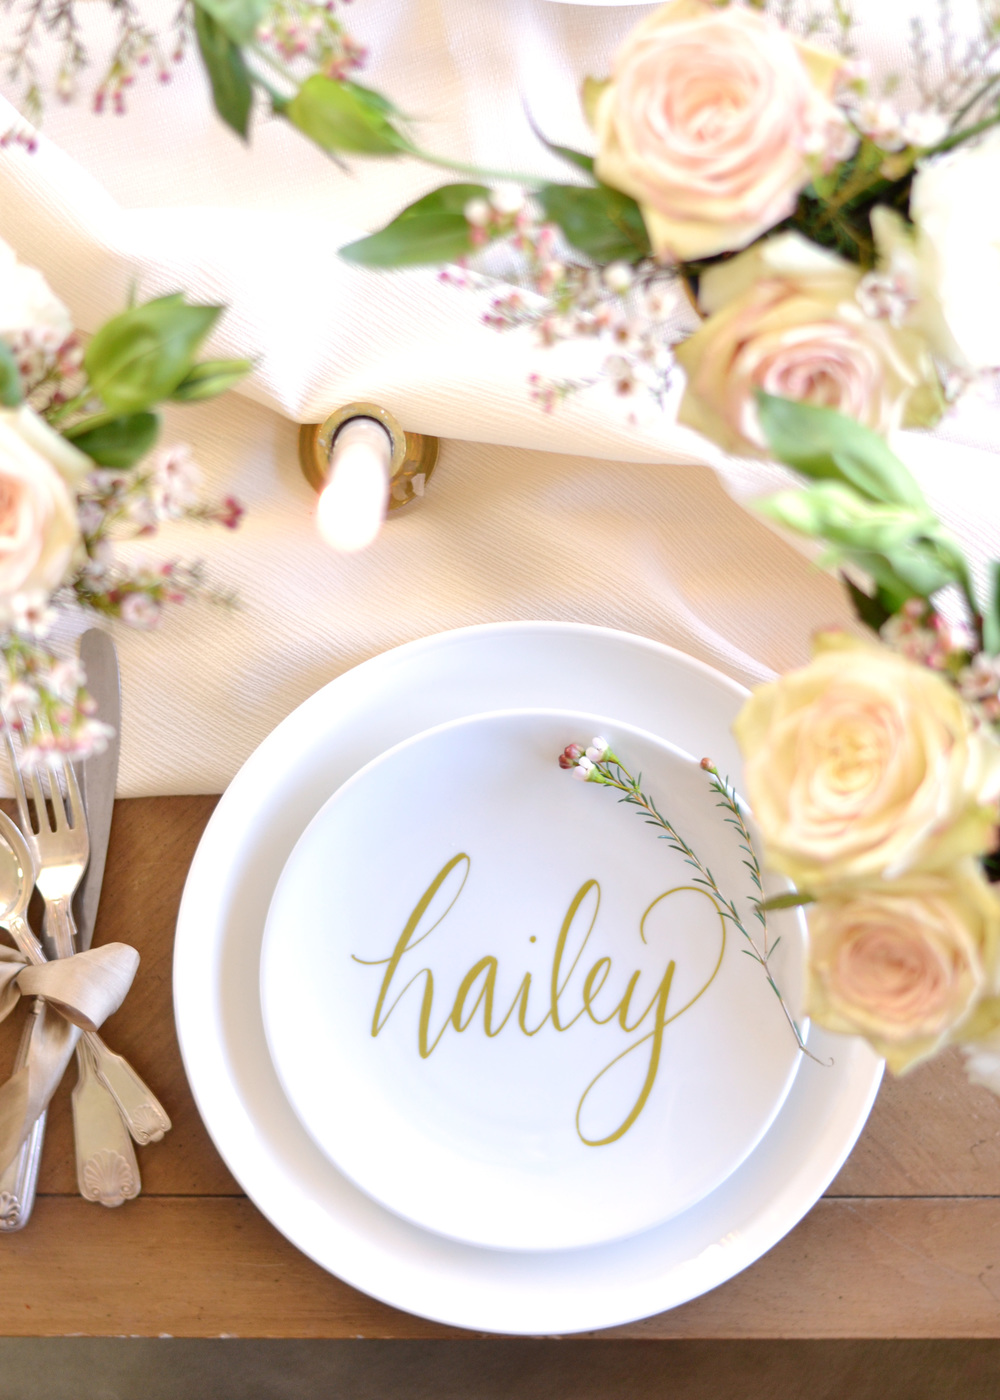 Use the Wine Glass Writer on plates for DIY place settings